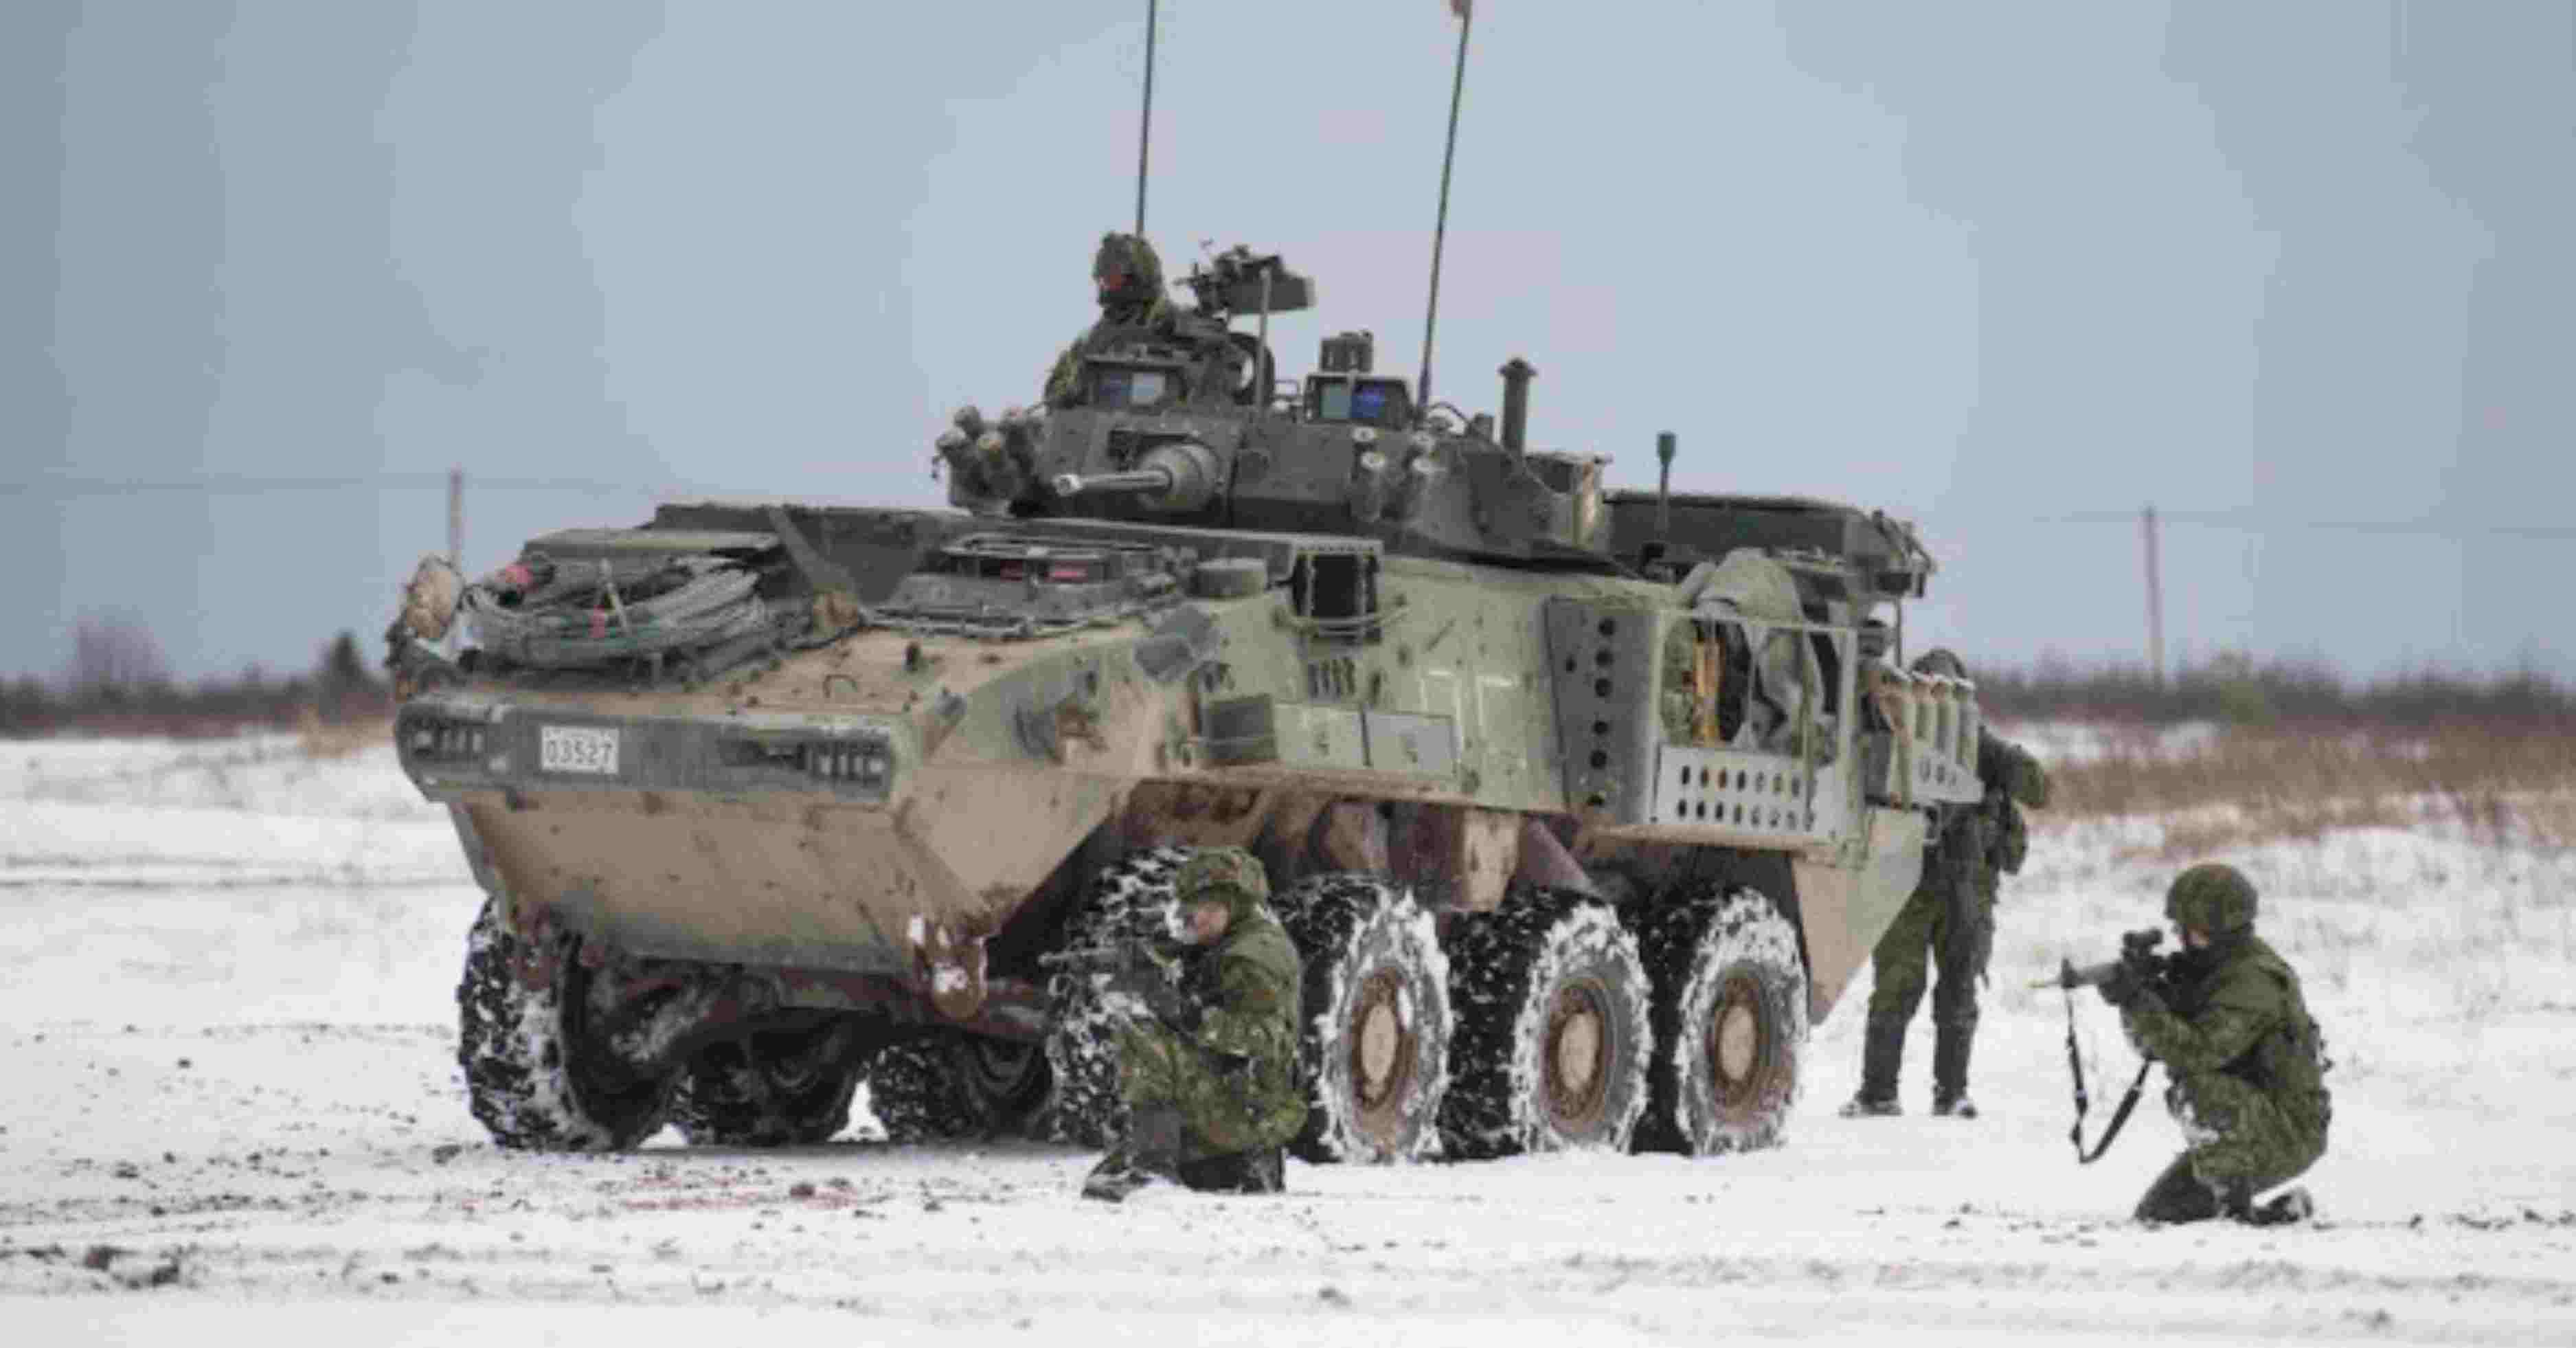 6215 Million Contract Awarded to General Dynamics for 3 Land C4ISR by the Canadian Army